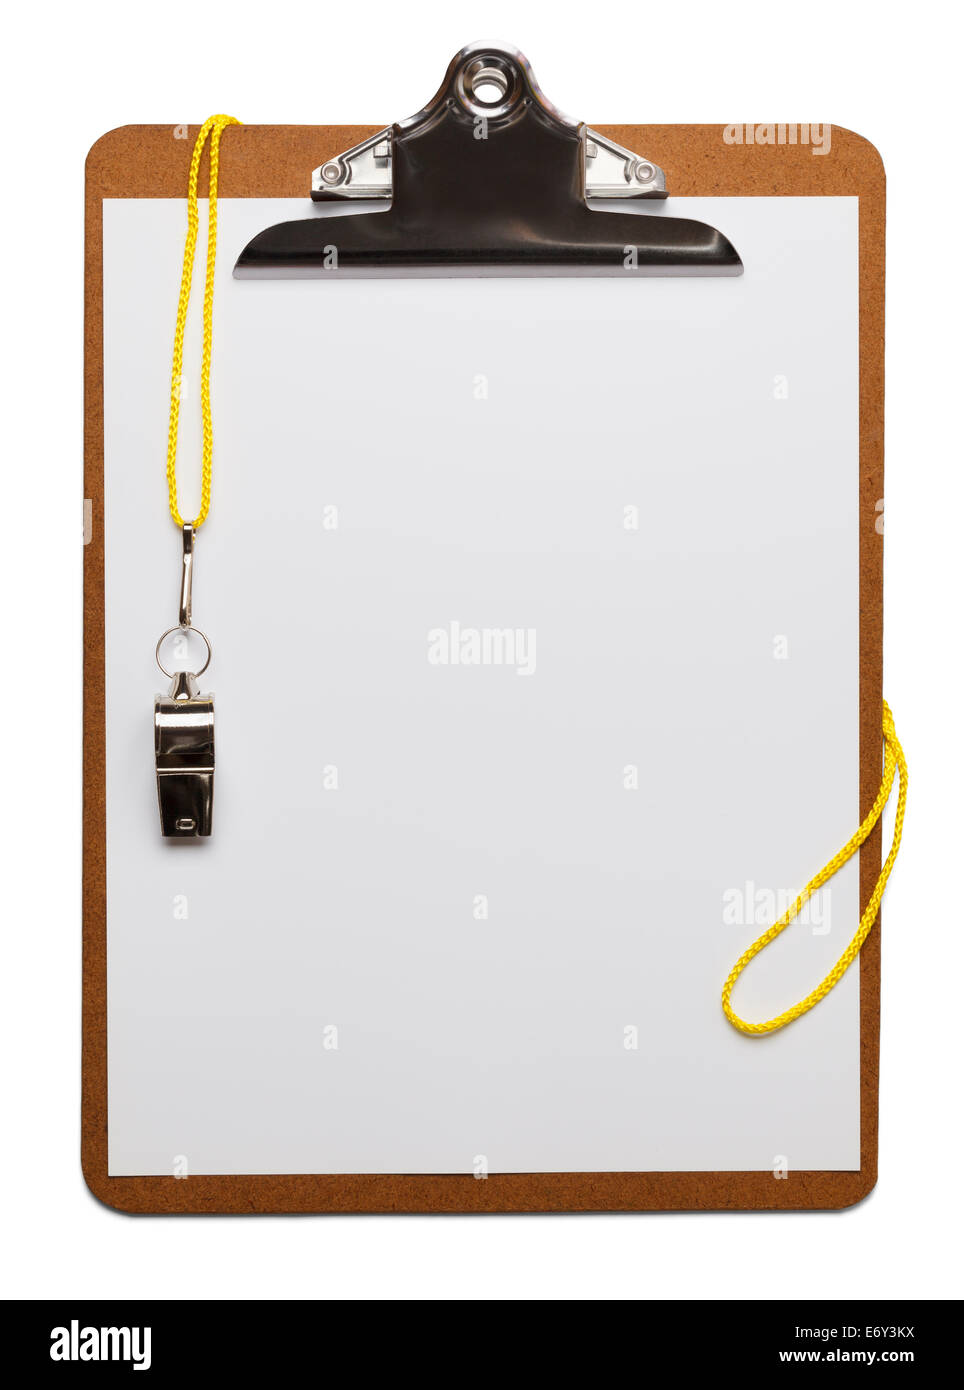 Blank clipboard with whistle on isolated white background. - Stock Image